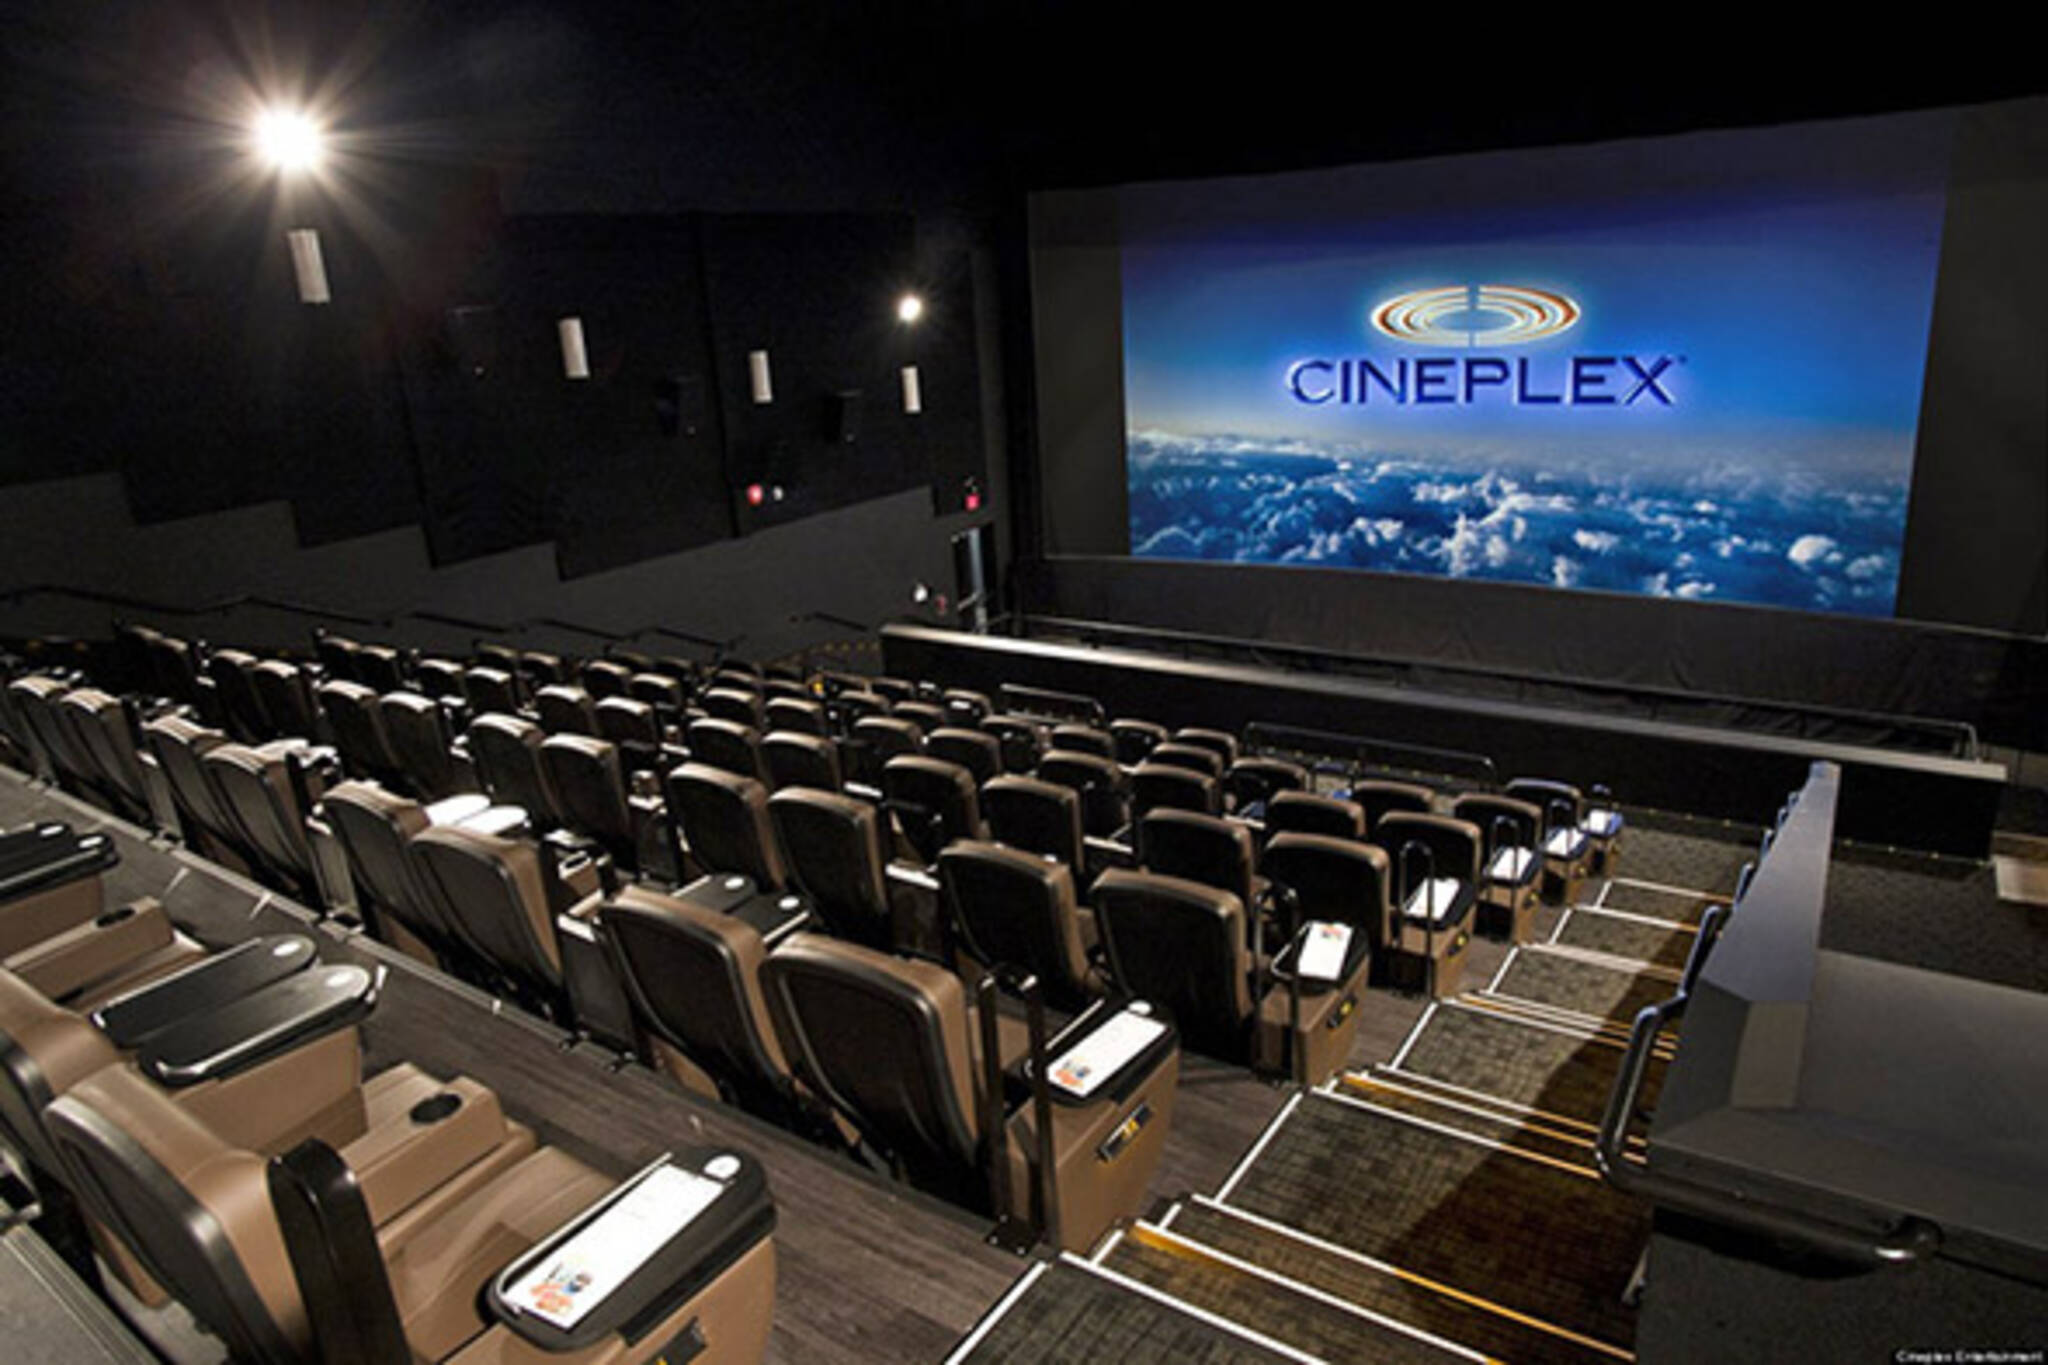 Cineplex Reducing Drink Sizes At Toronto Movie Theatres